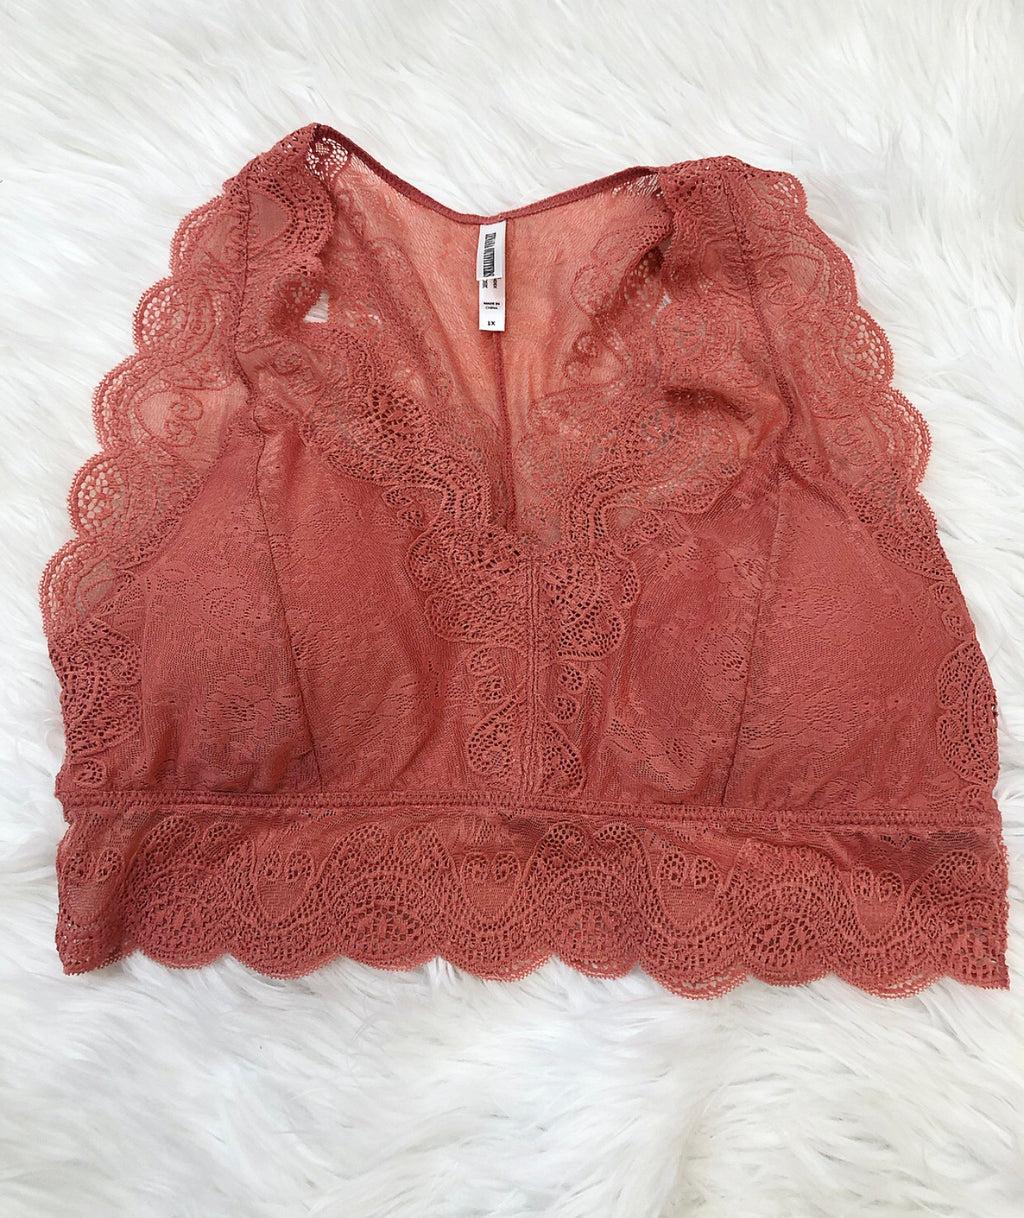 Coral dreams lace Bralette - Sissy Boutique